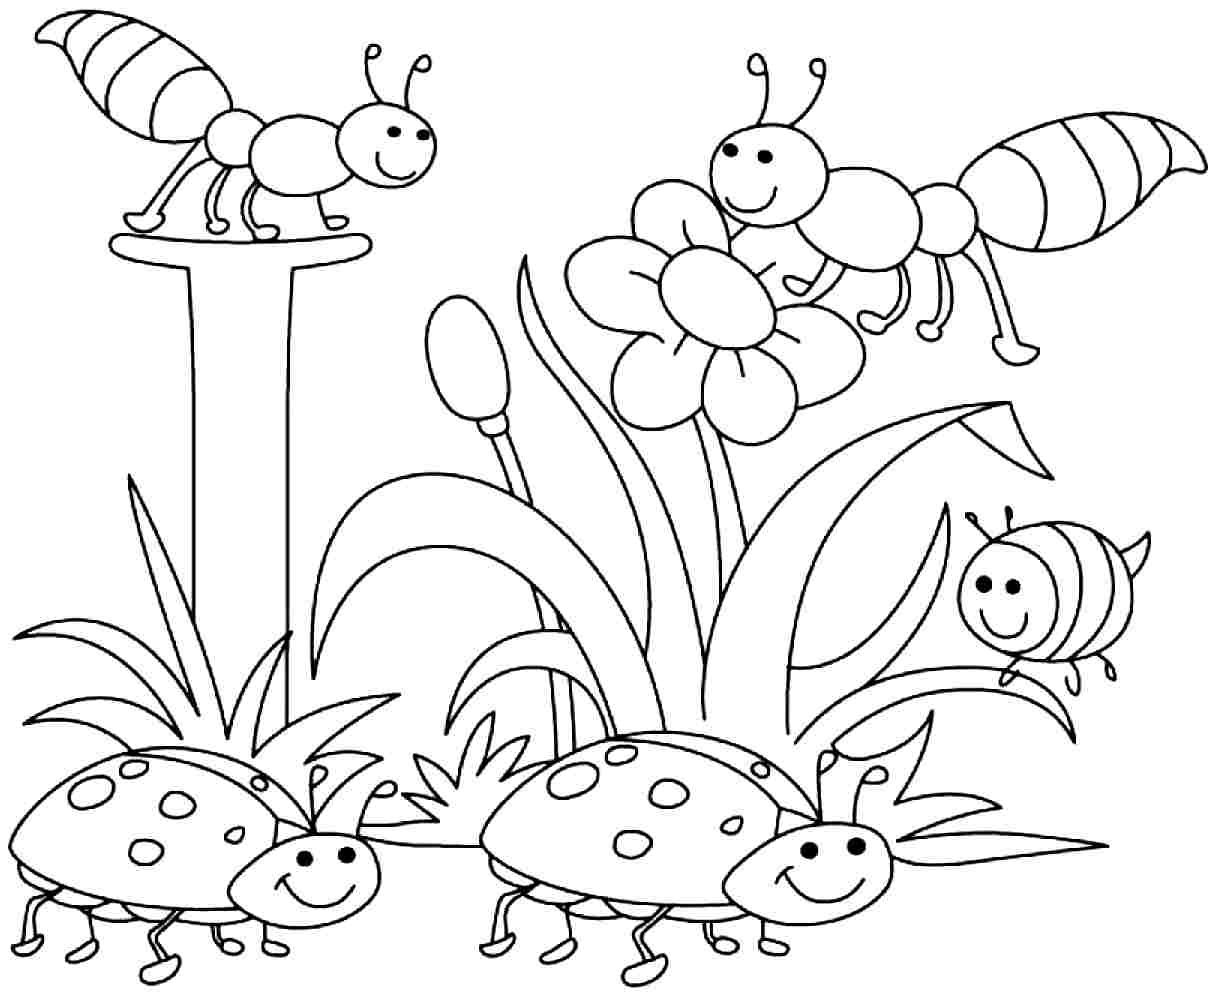 printable spring coloring pages buscar con google spring coloring pages printable